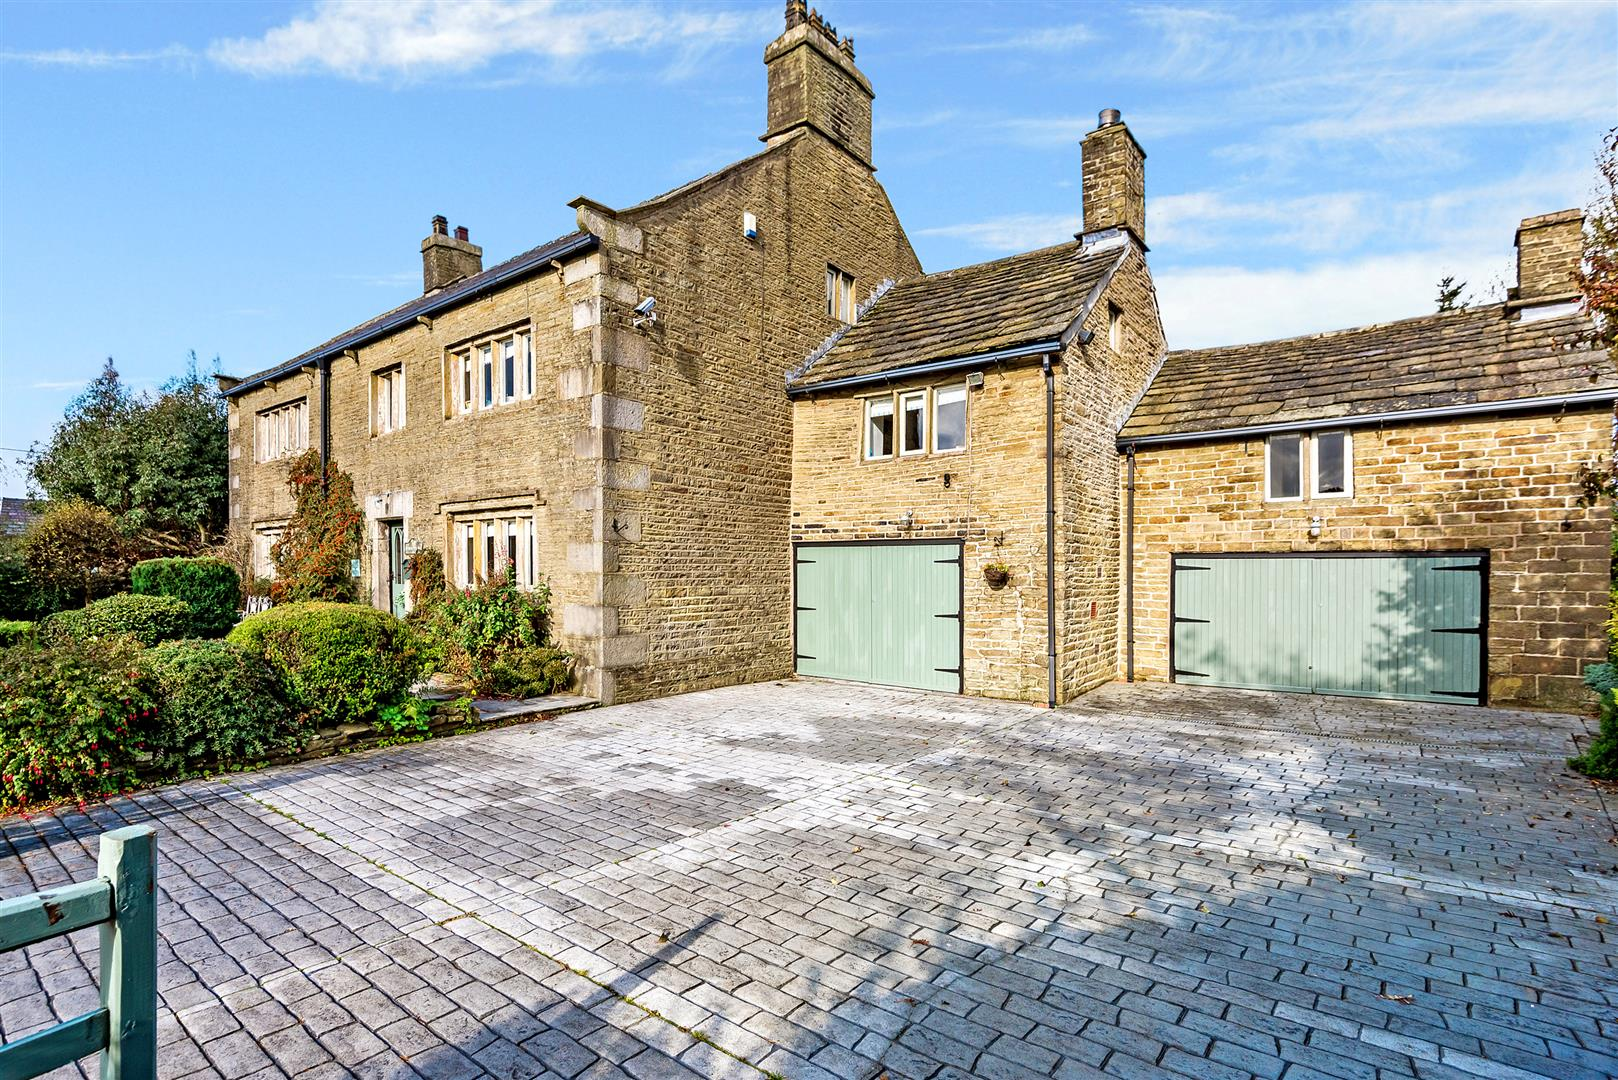 5 bedroom house For Sale in Bolton - Main Image.